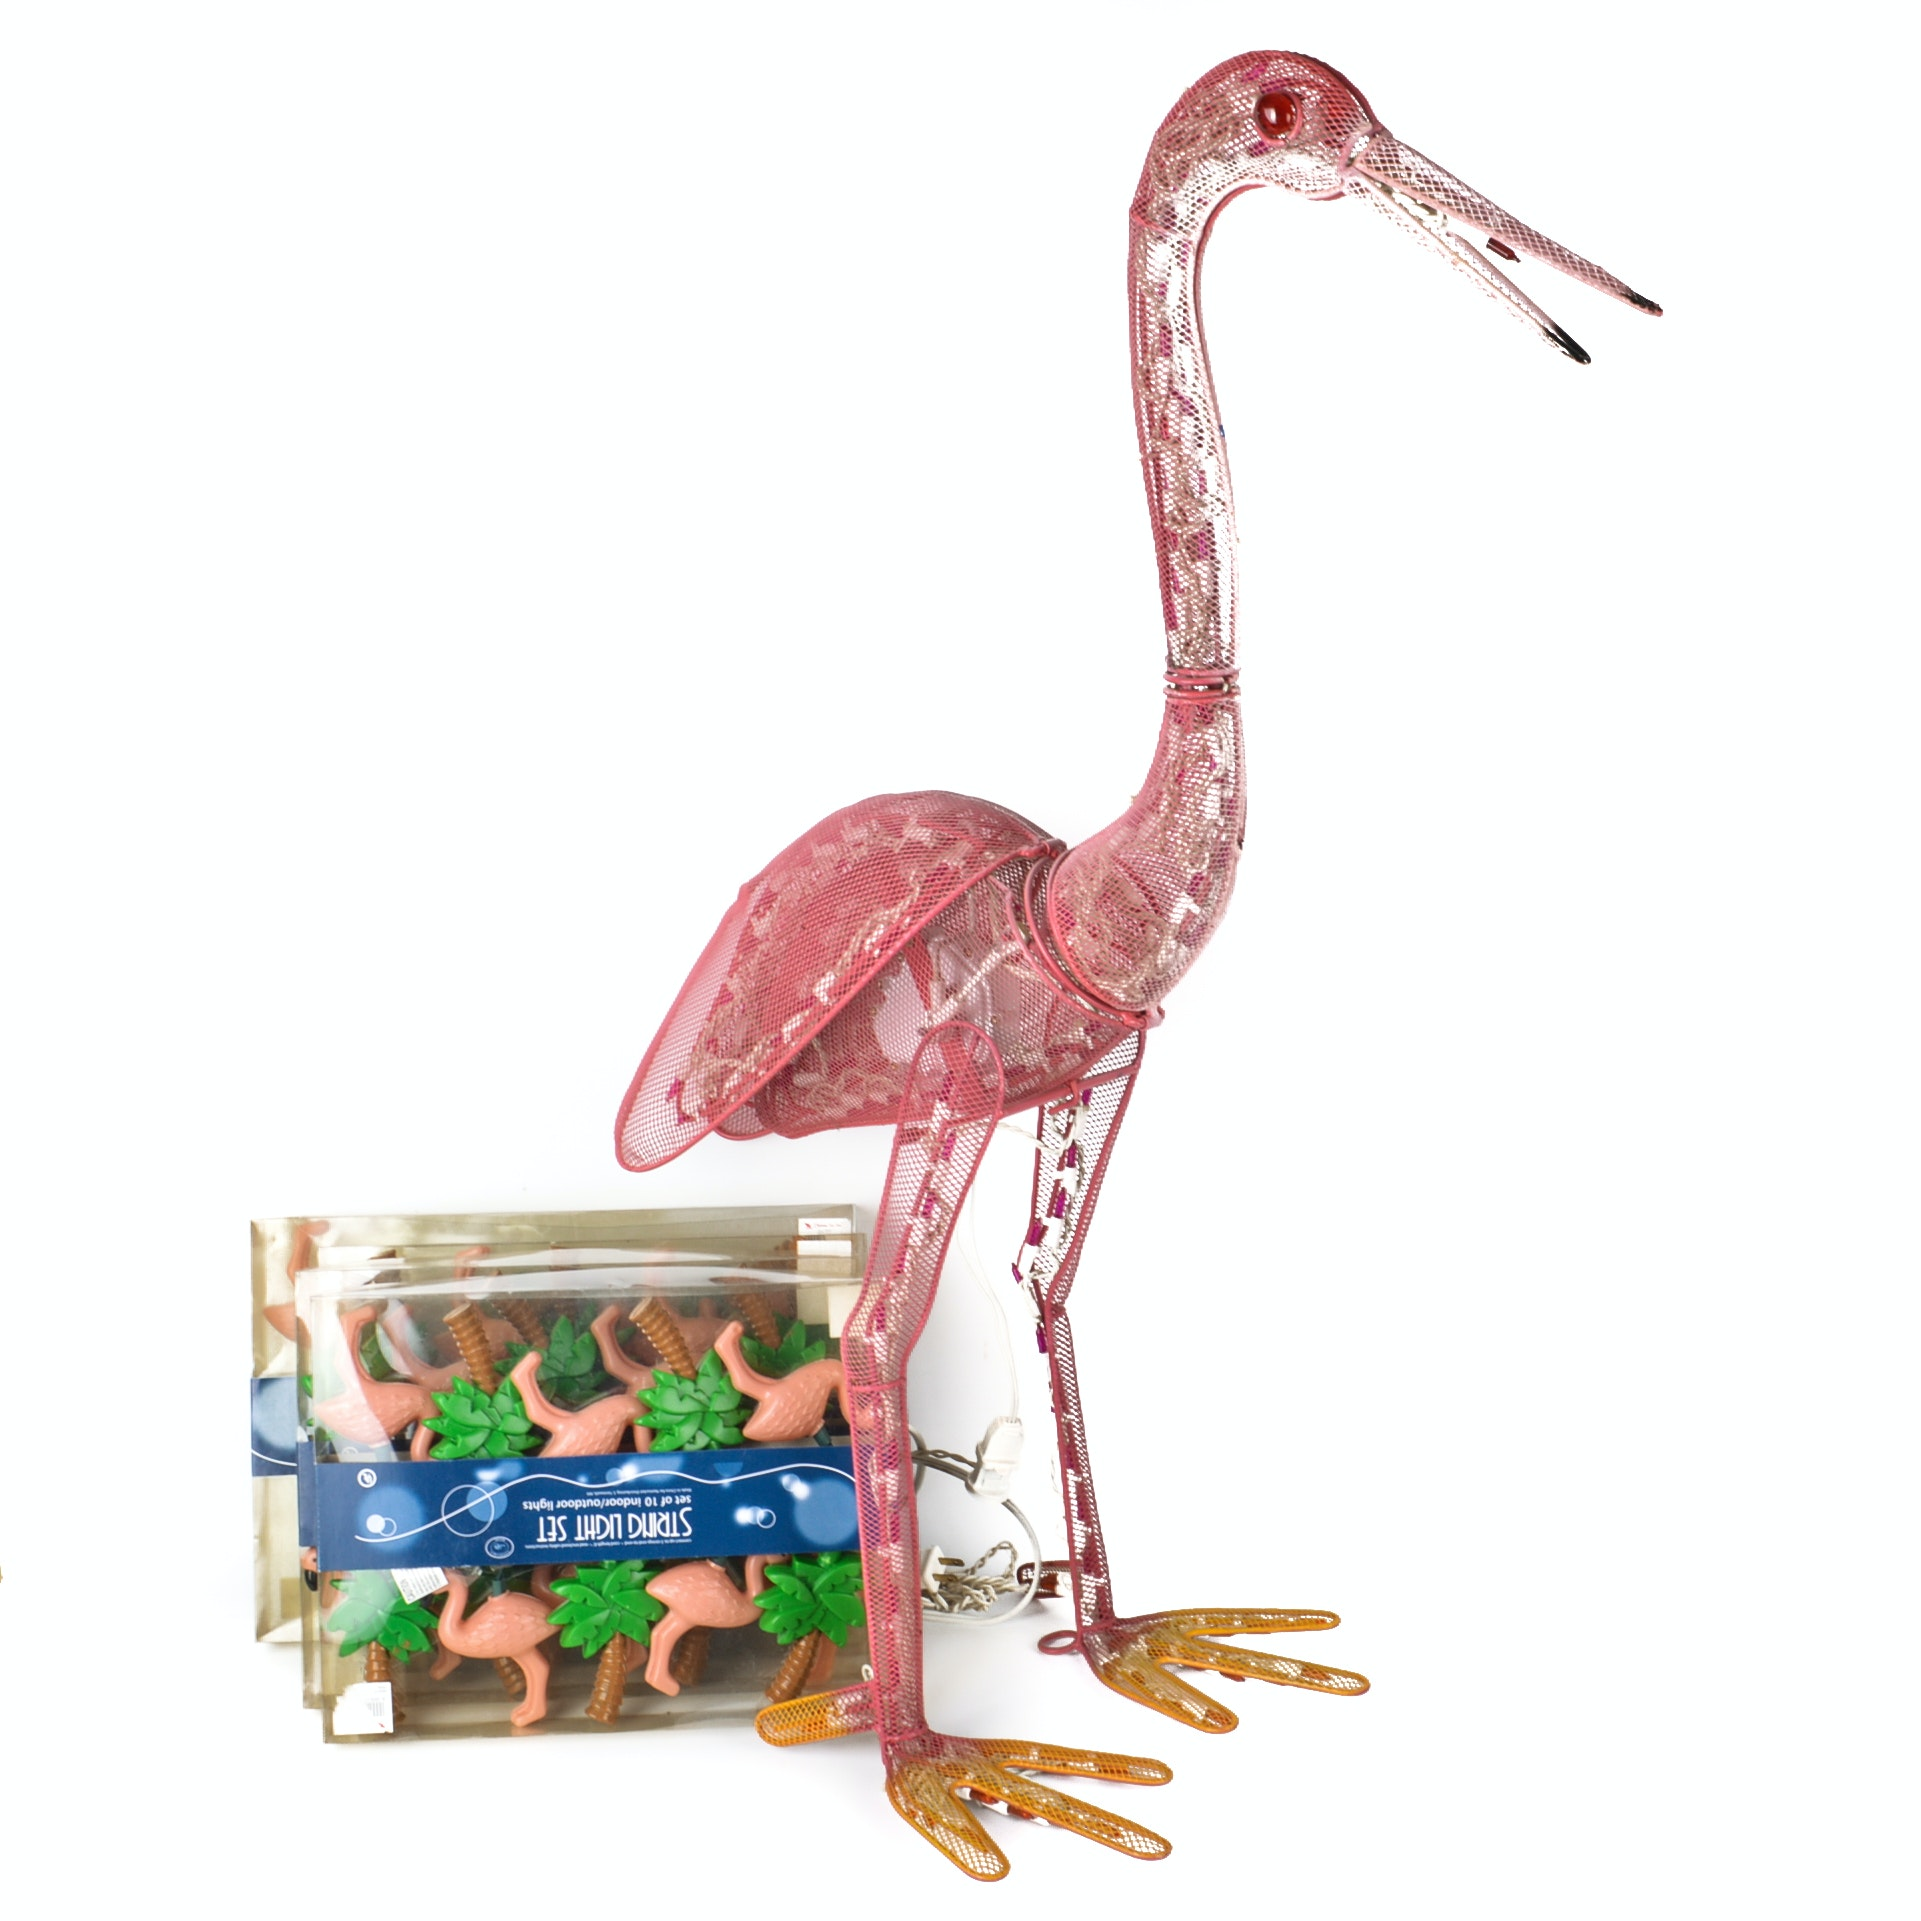 Lighted Animated Garden Flamingo and Party Lights